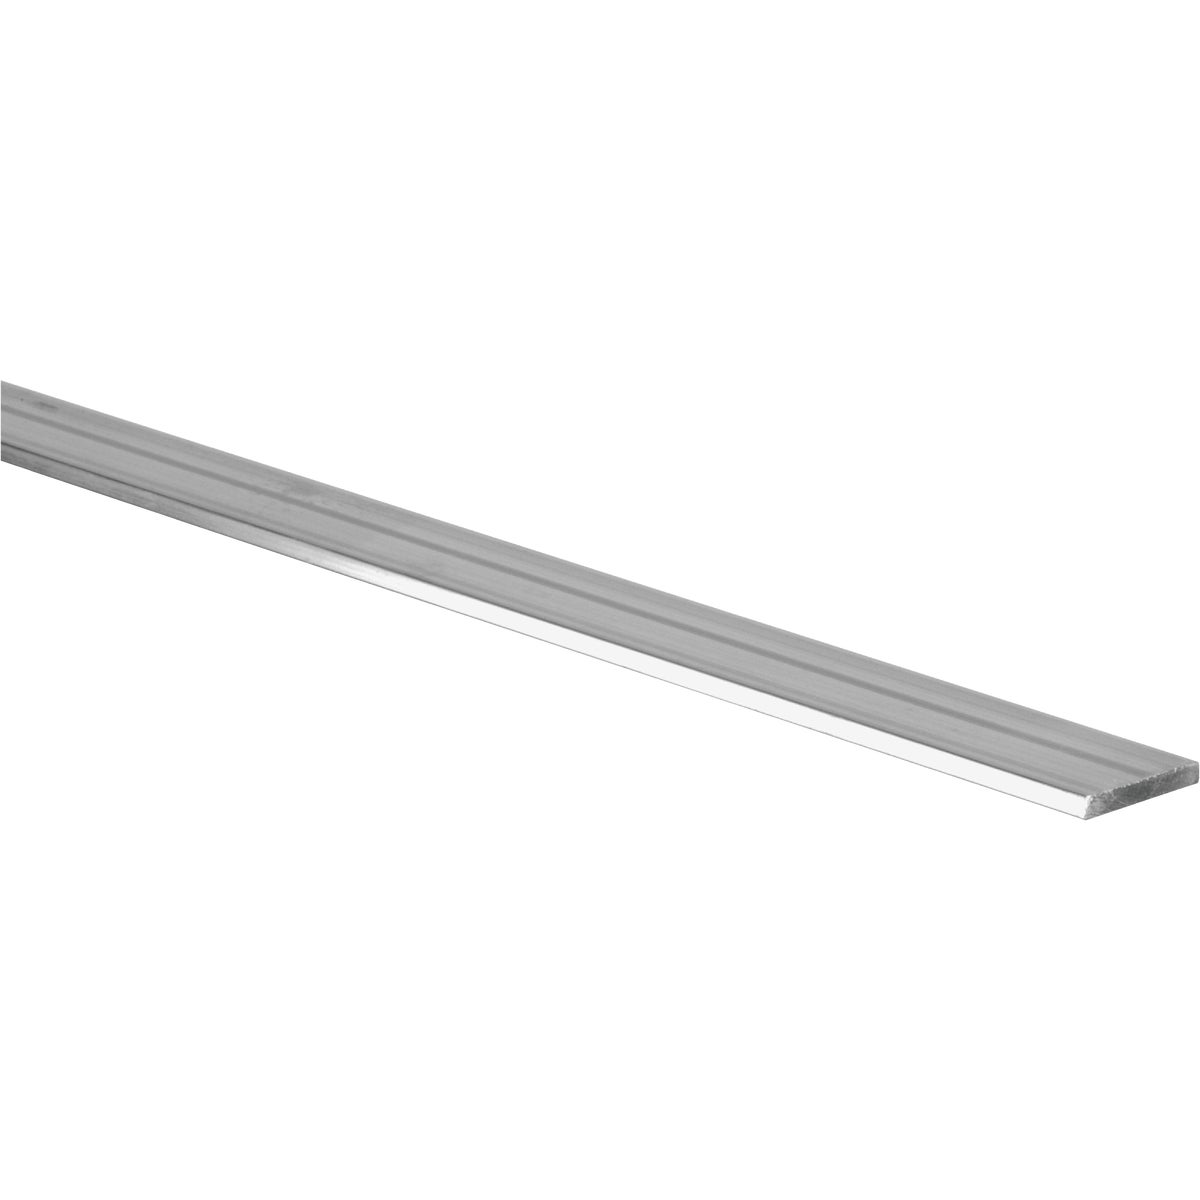 1/8X1/2X6' ALUMINUM FLAT - N247015 by National Mfg Co